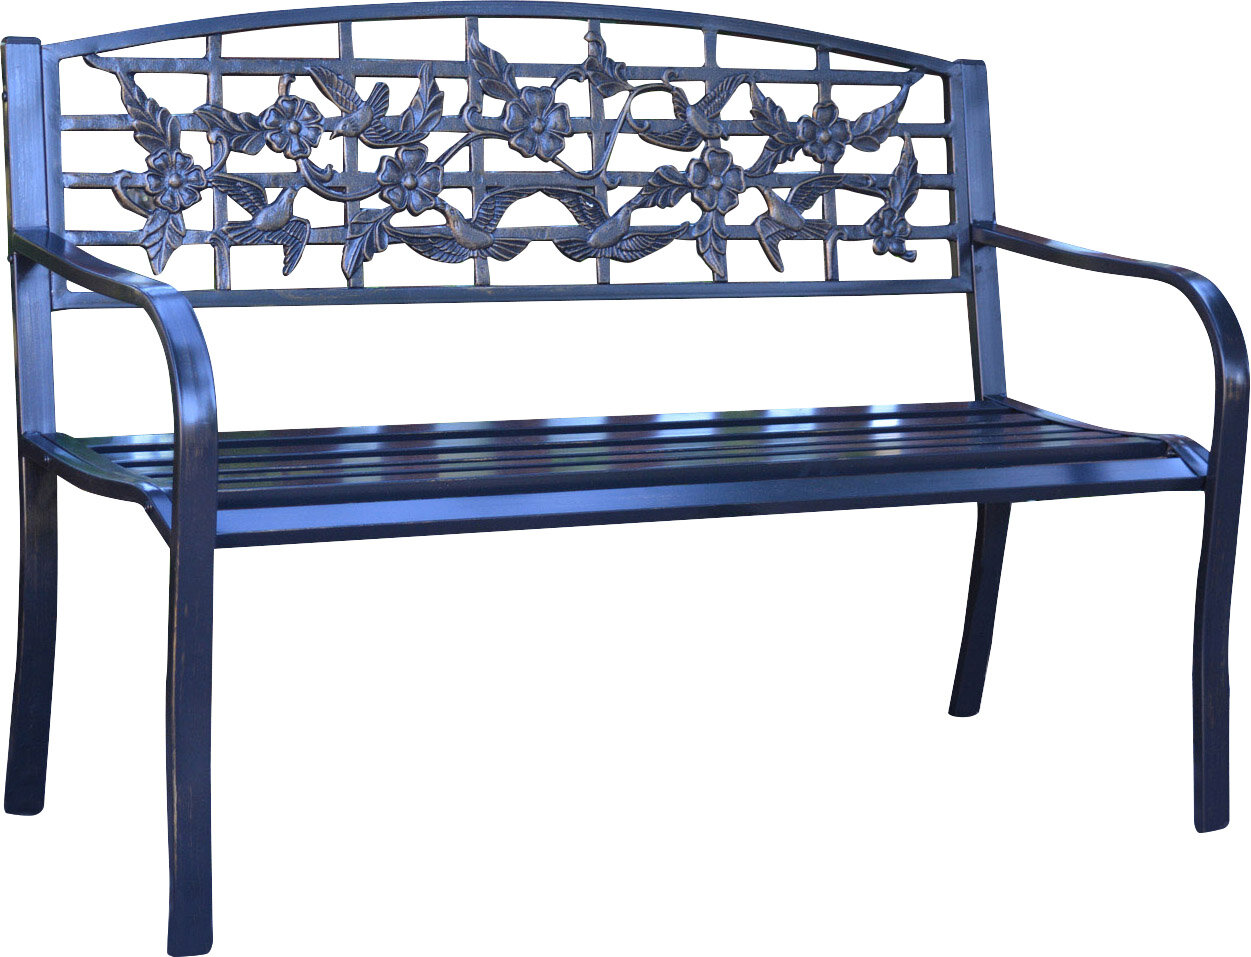 Flowers And Bird Curved Back Metal Park Bench Reviews Joss Main